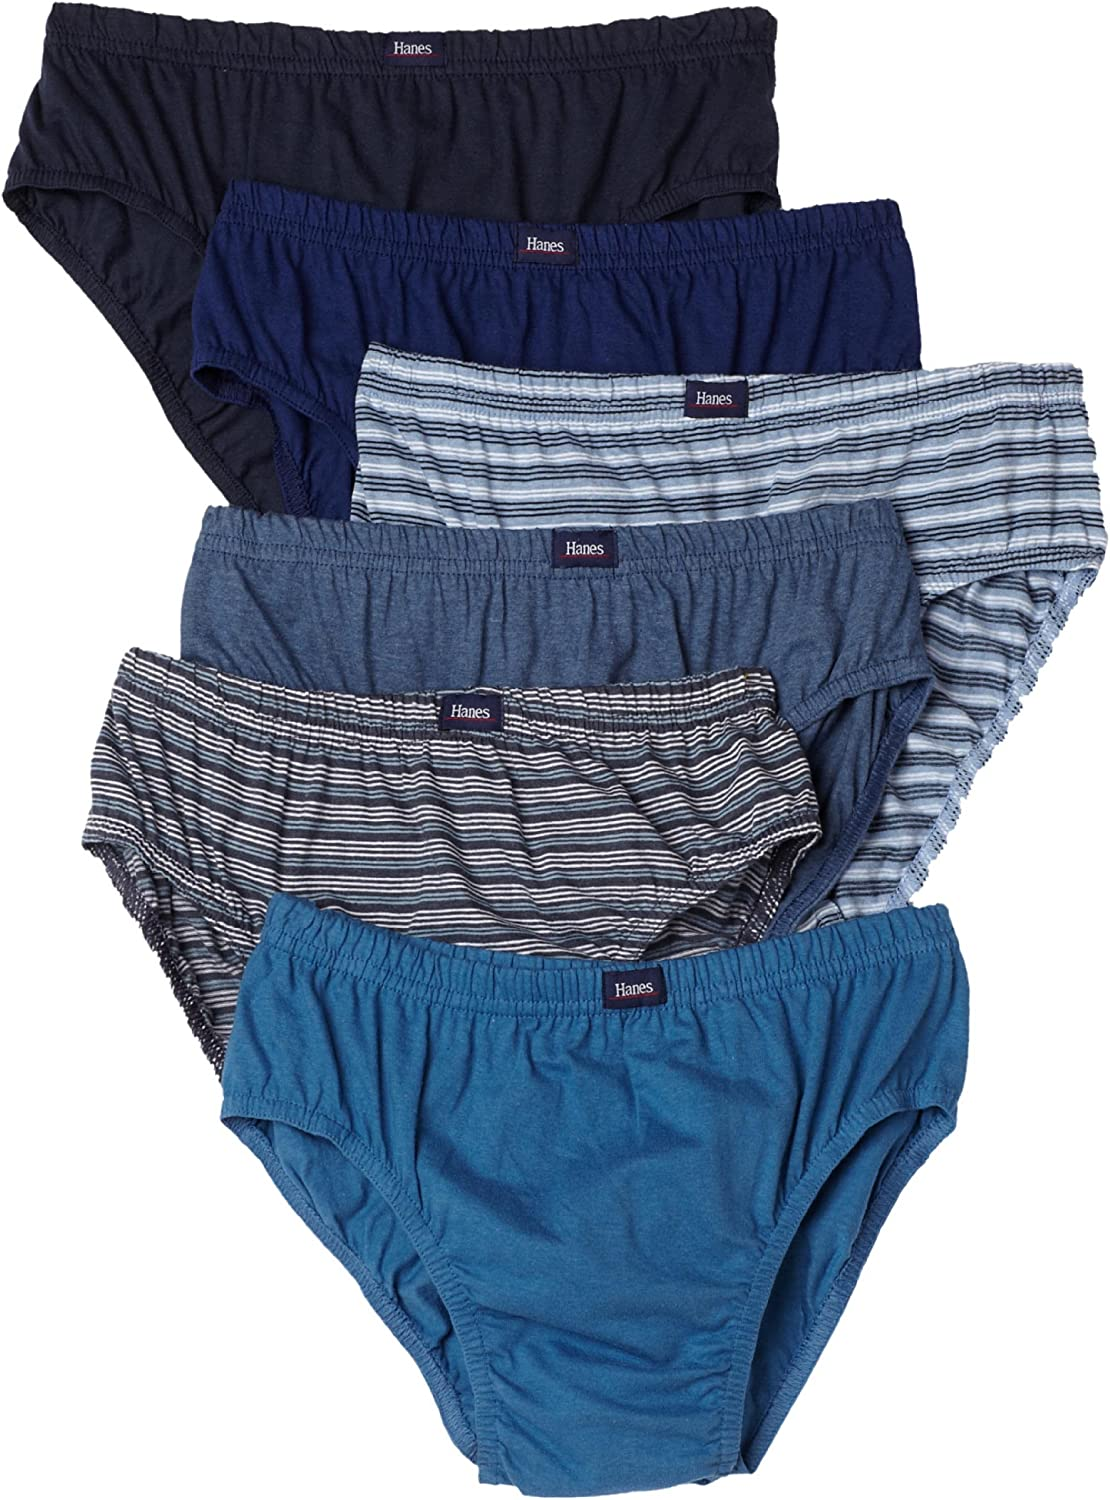 Hanes Ultimate Men's 6-Pack Classic Comfort Flex Waistband Sport Brief Underwear